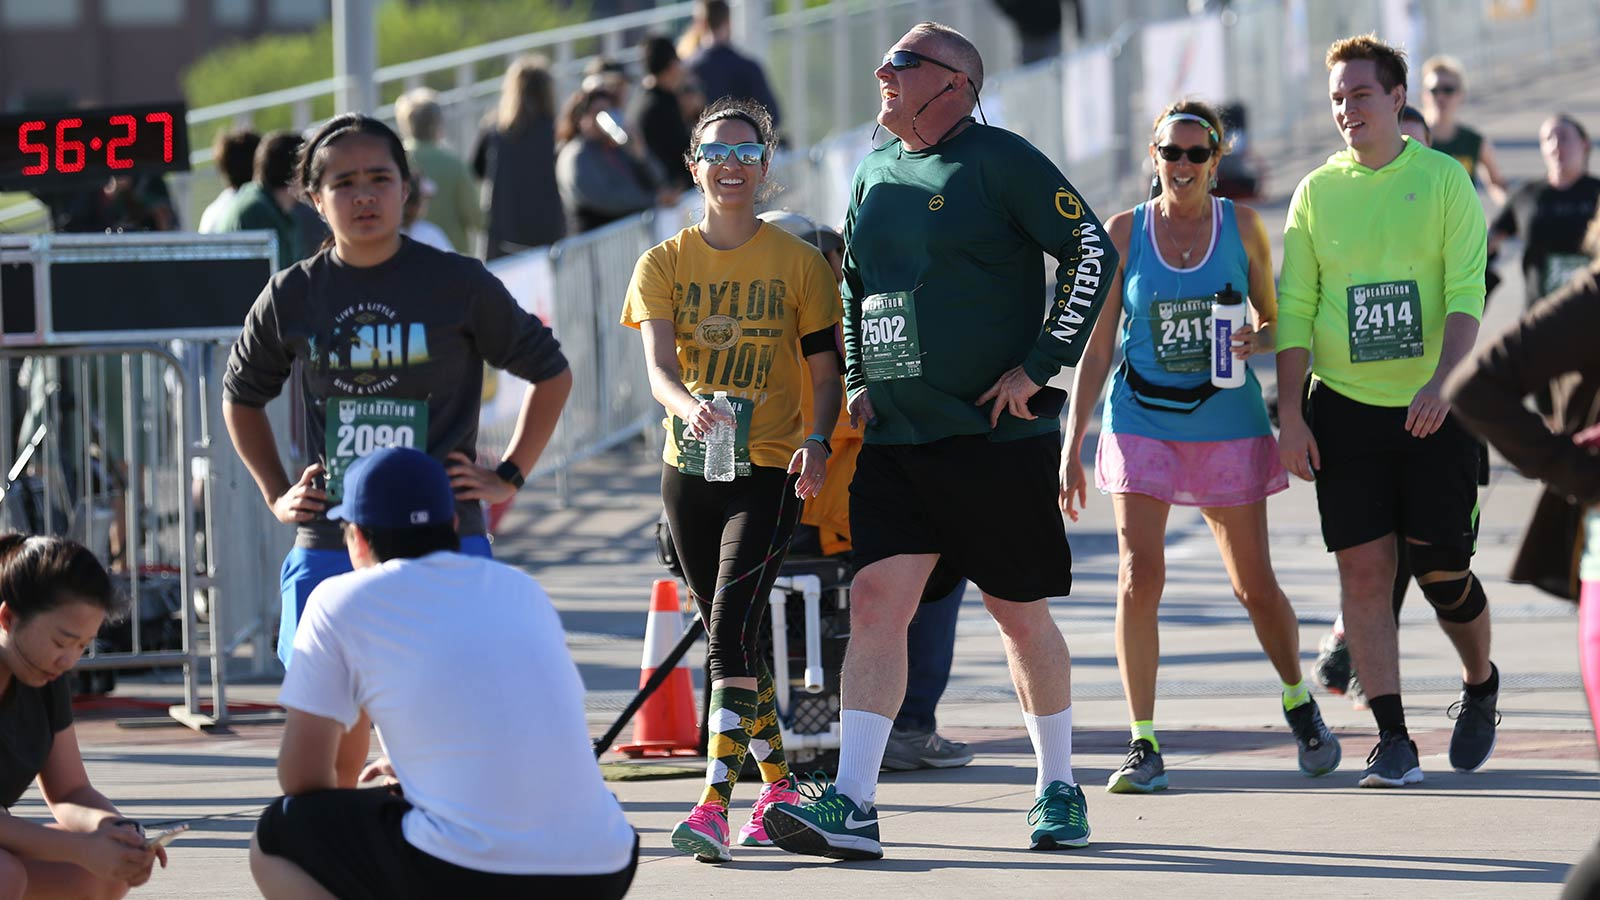 The Bearathon has earned a reputation as the The Toughest Half-Marathon in the State of Texas.